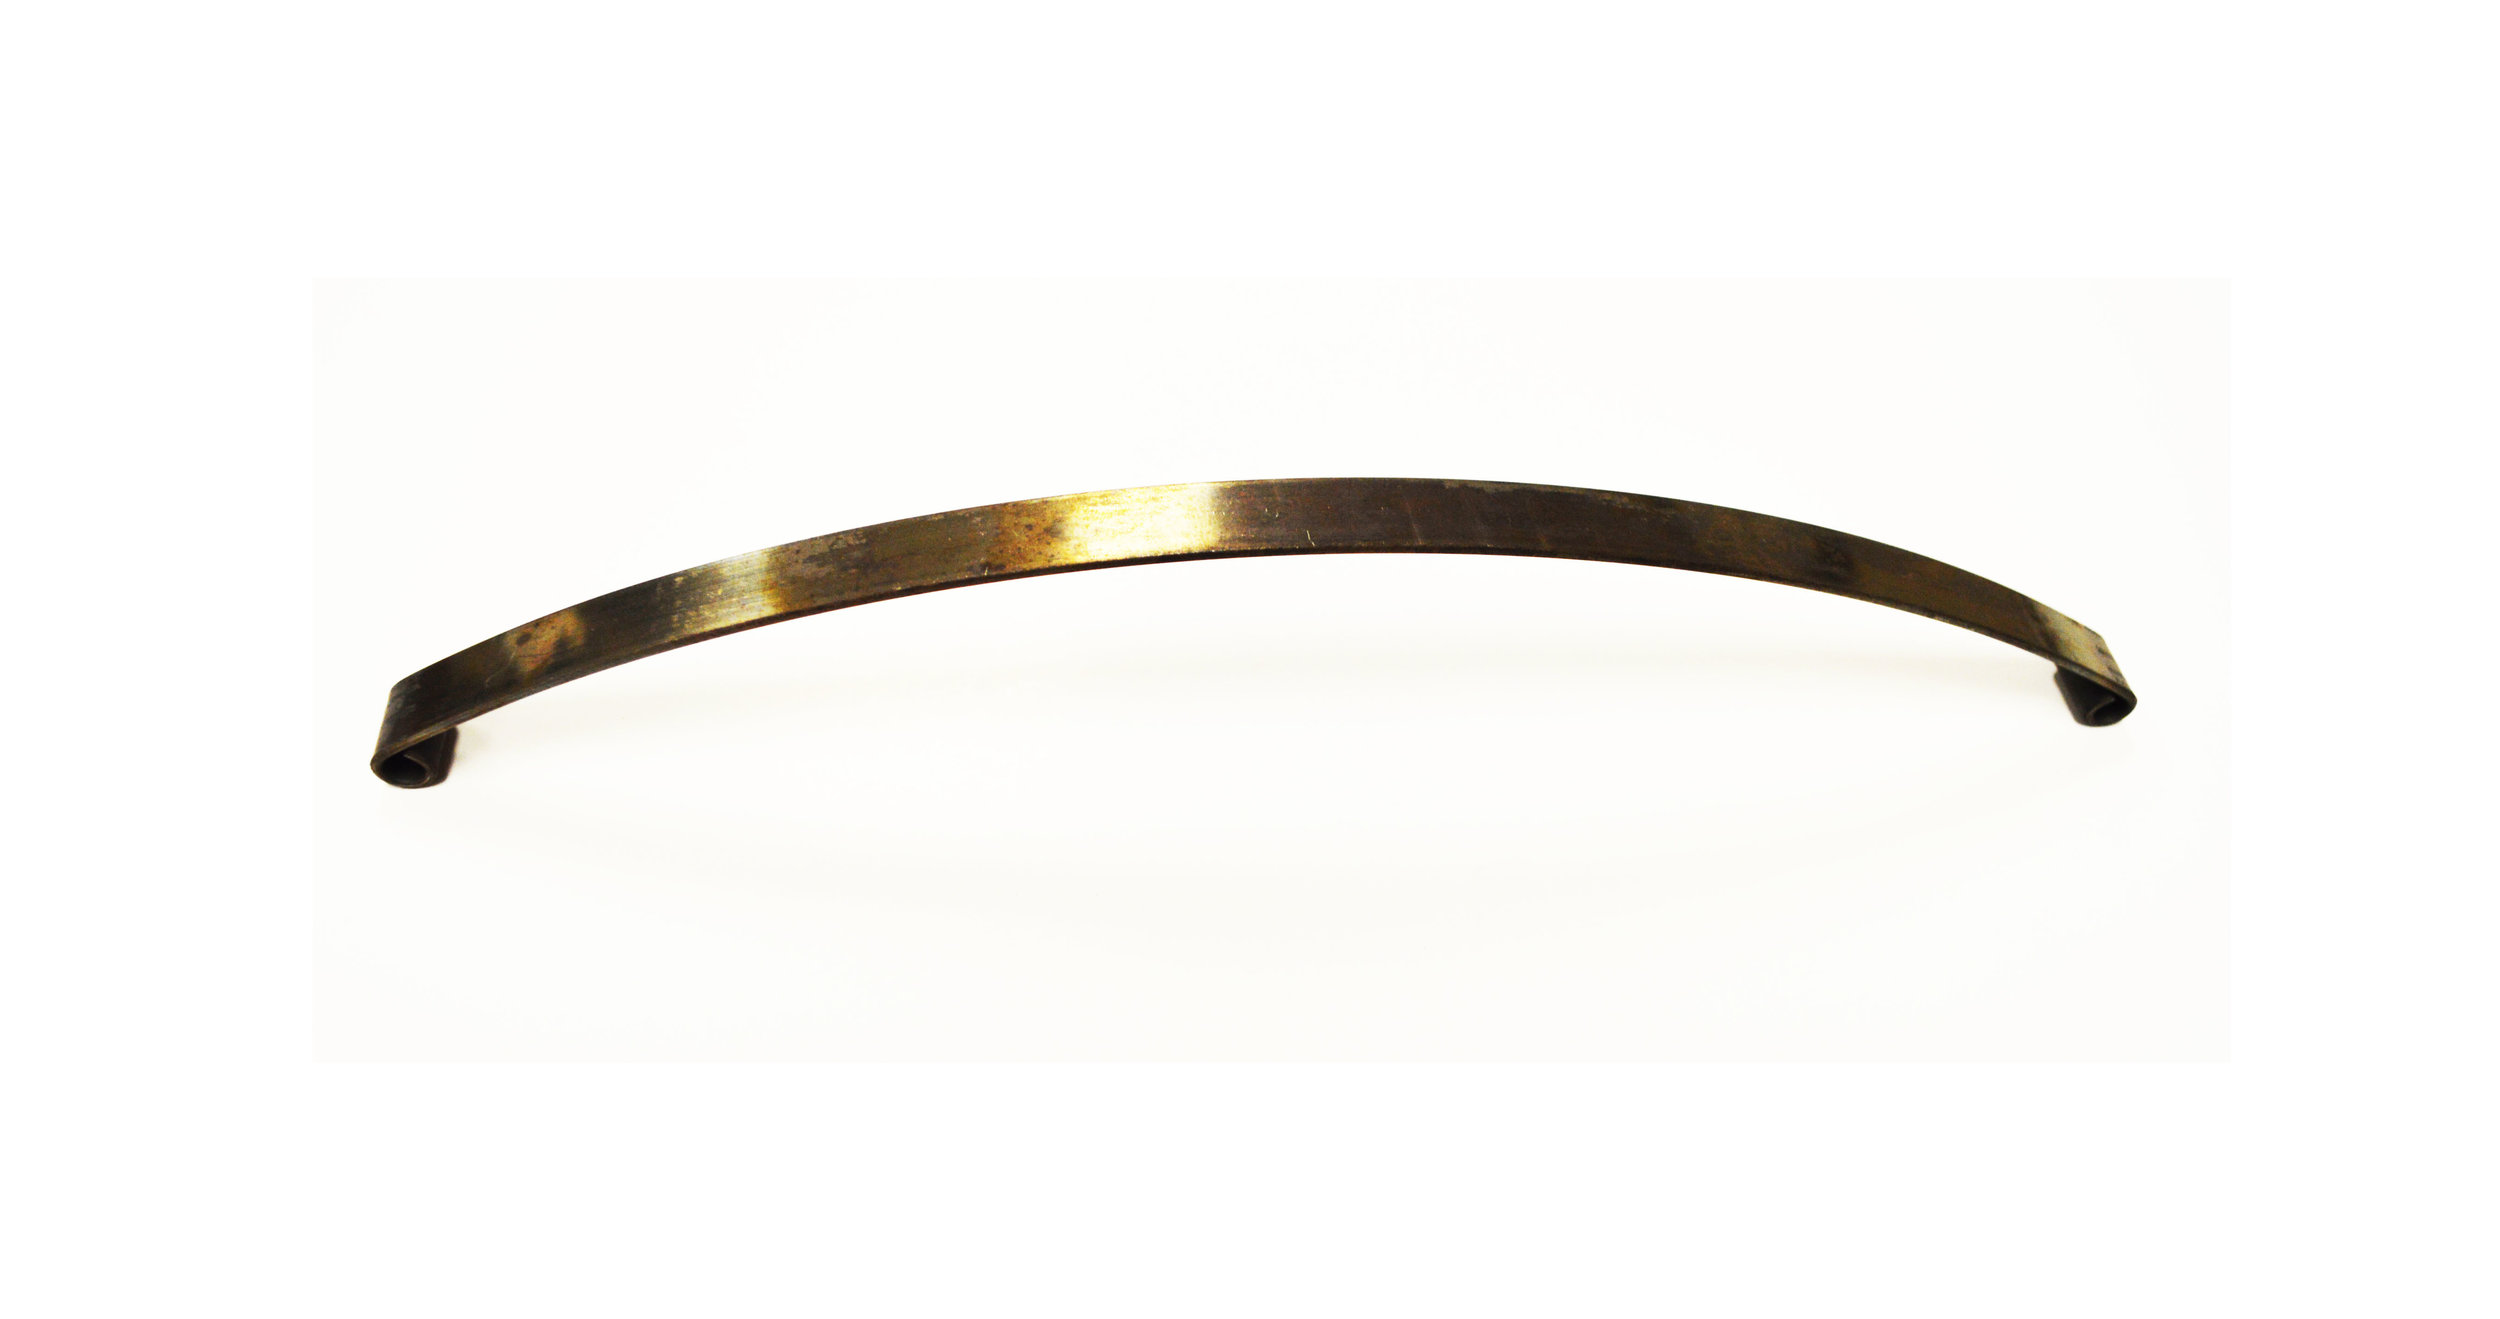 Bow Spring Collar-          Centralizer Blade       High Profile:SMS-5100      Low Profile:SMS-5100-01